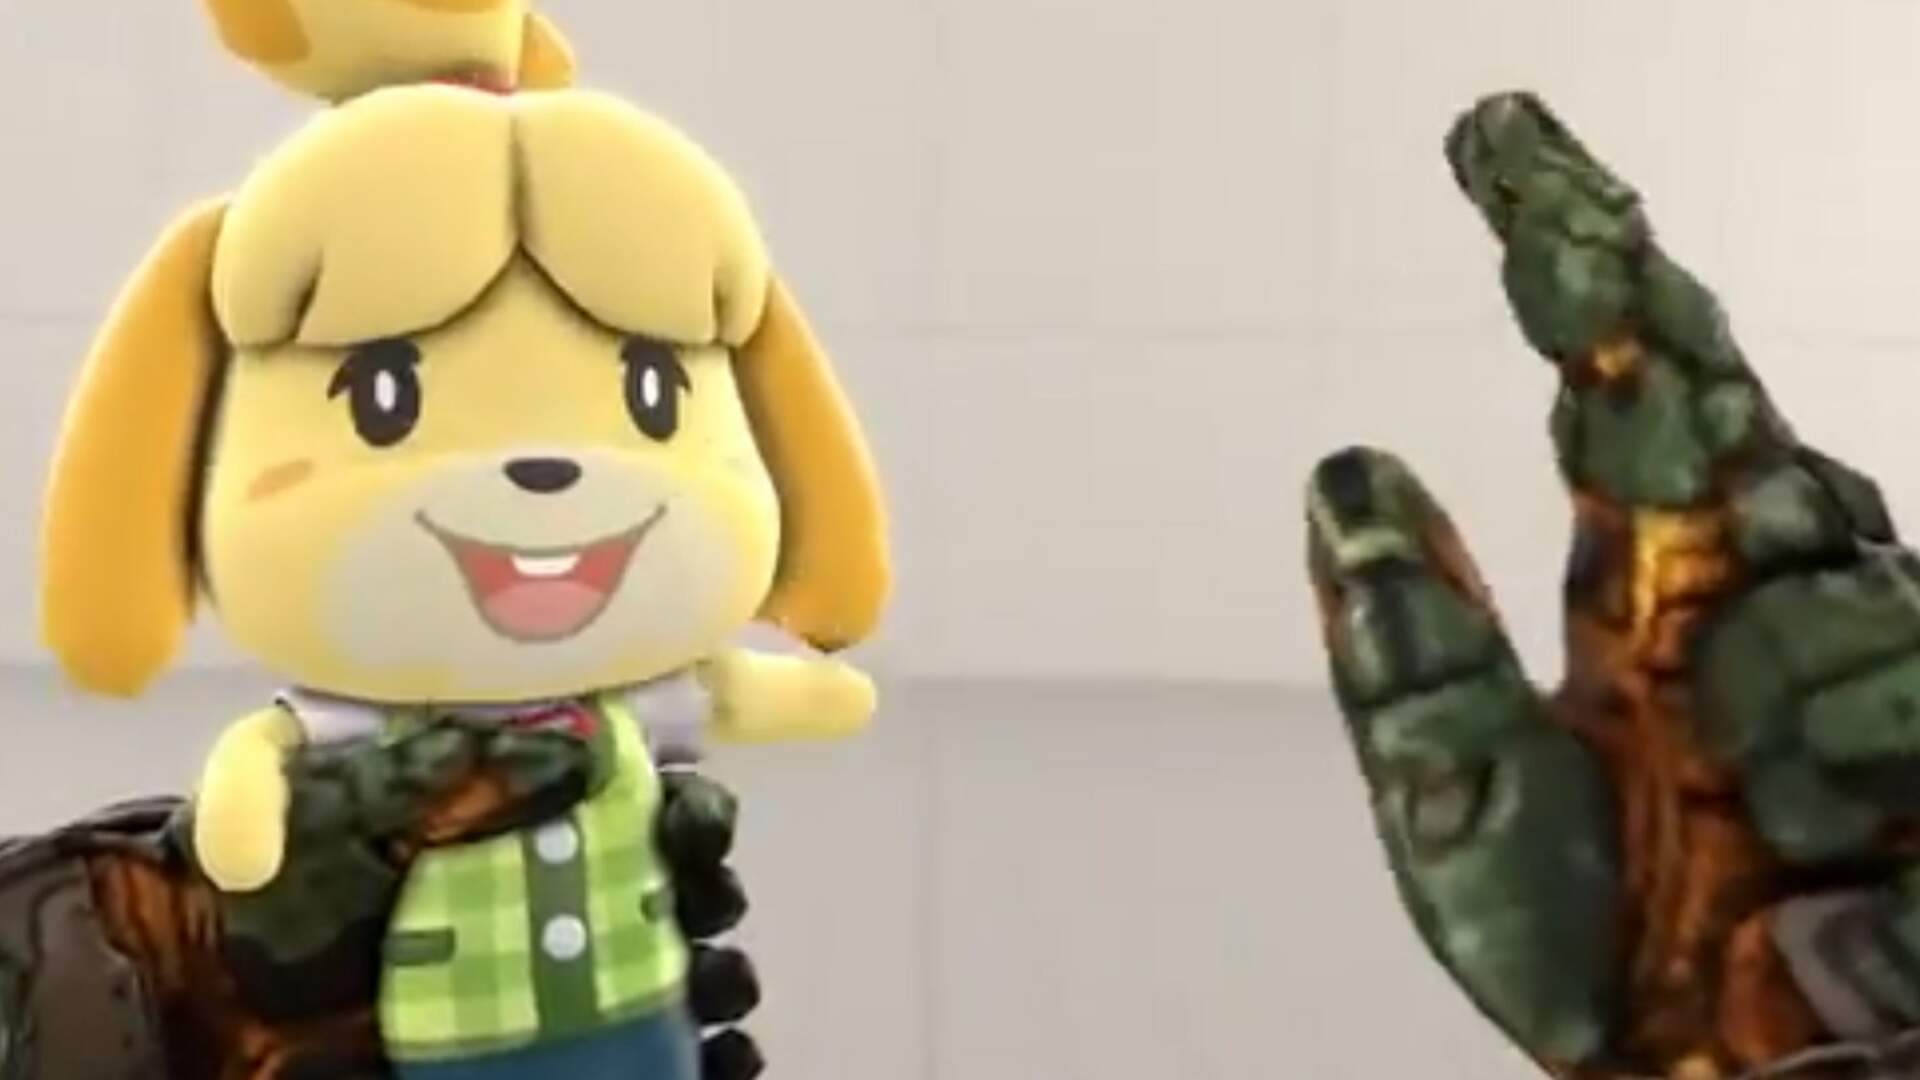 These Isabelle and Doomslayer Animations Are Adorable